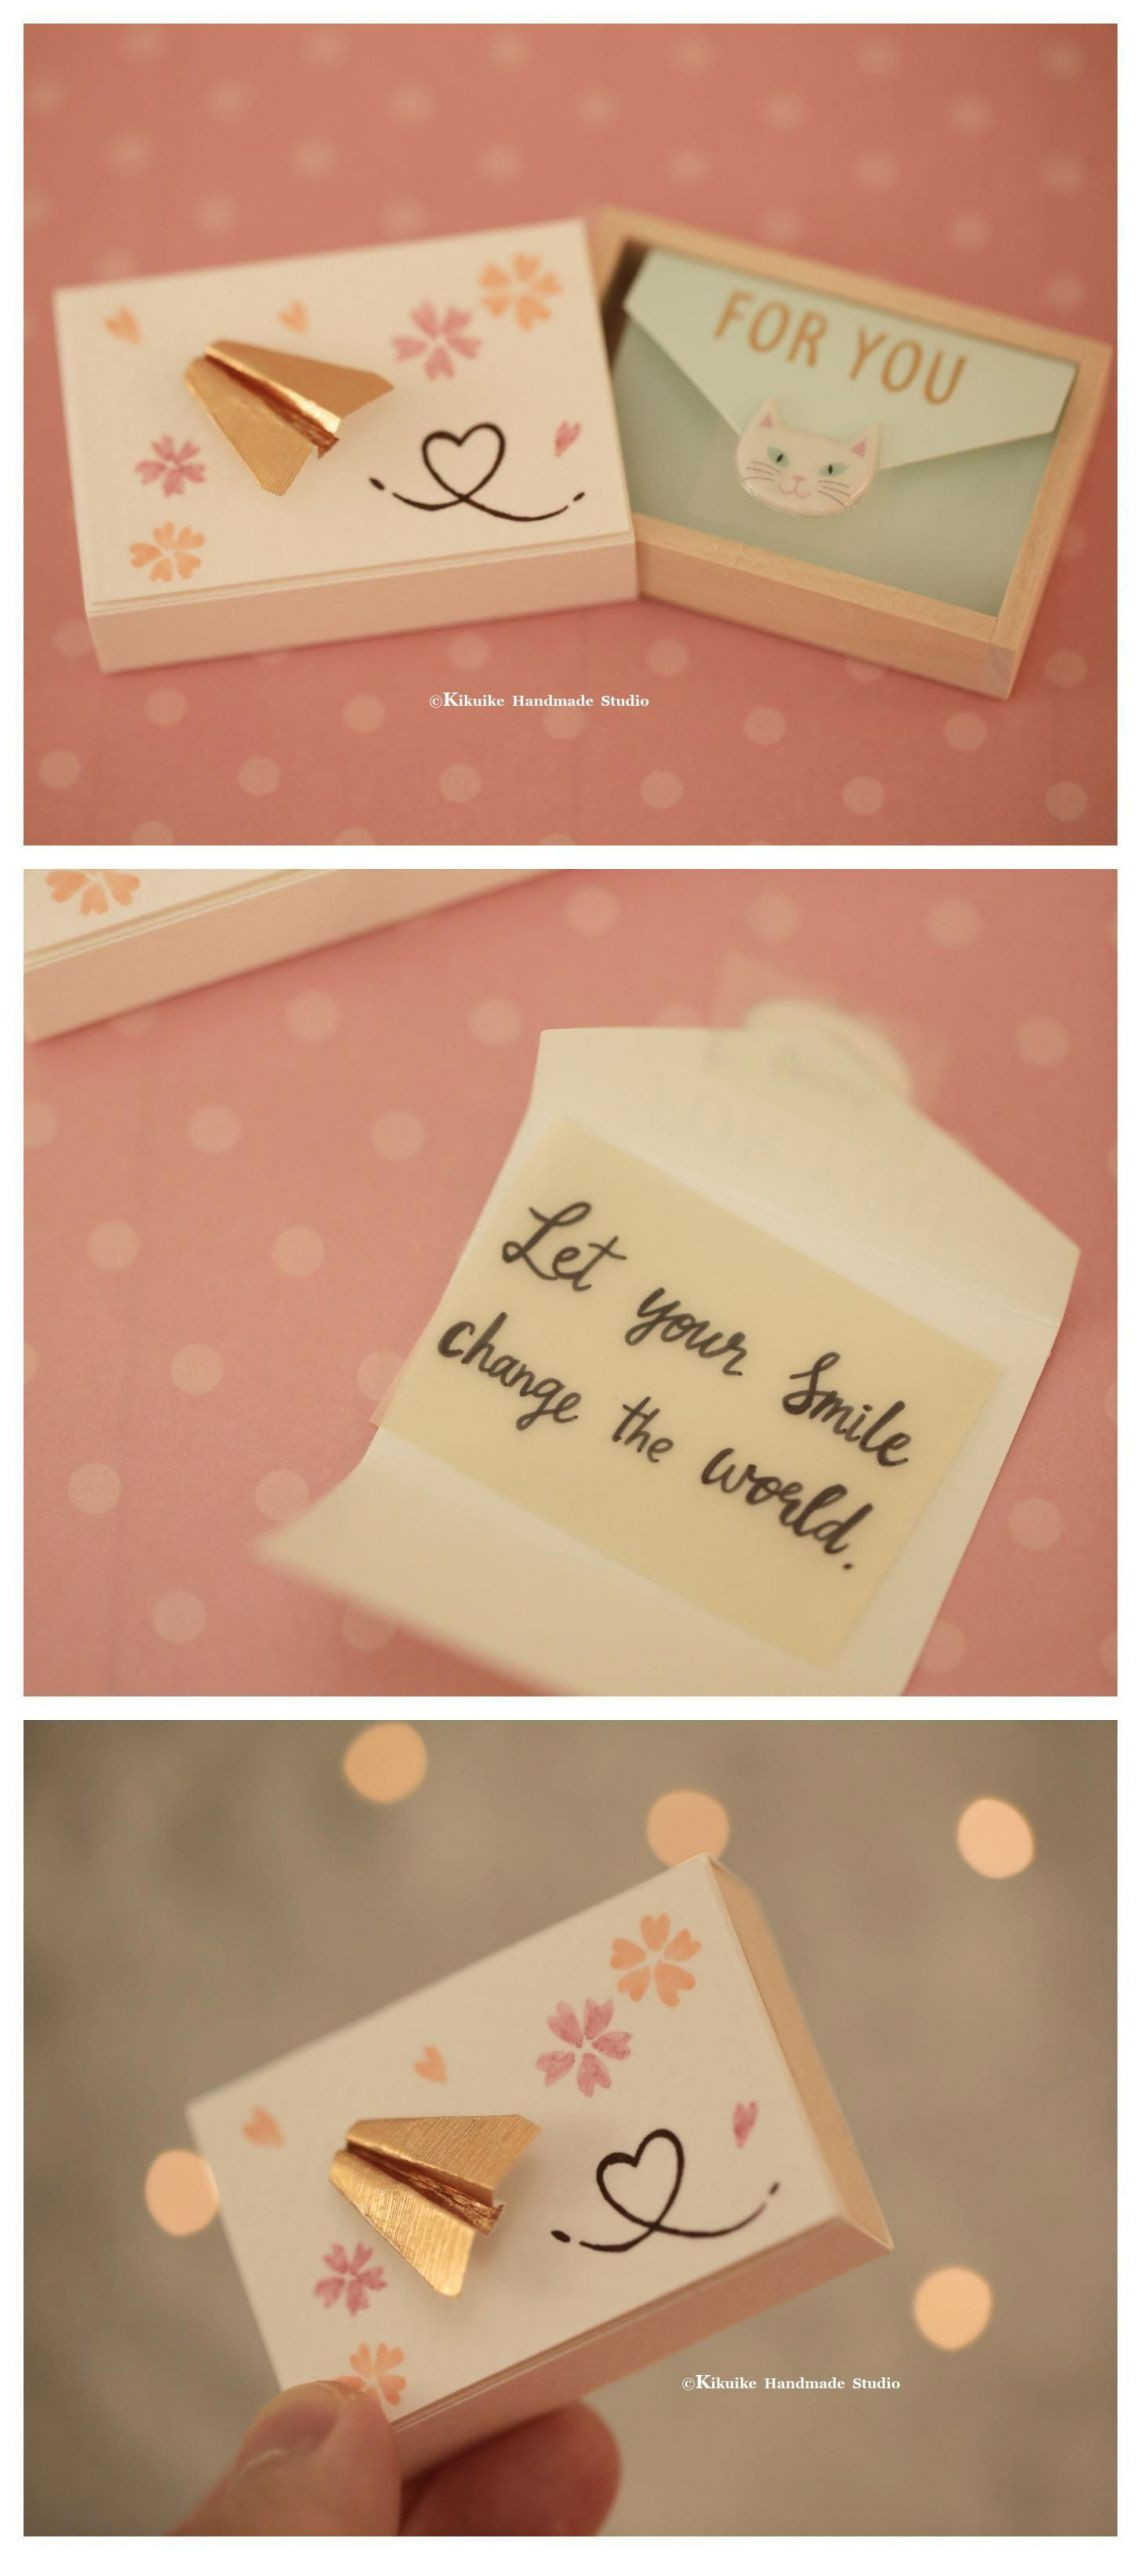 Christmas Card Quotes for Boyfriend Surprise Gifts for Him with Images Funny Love Cards